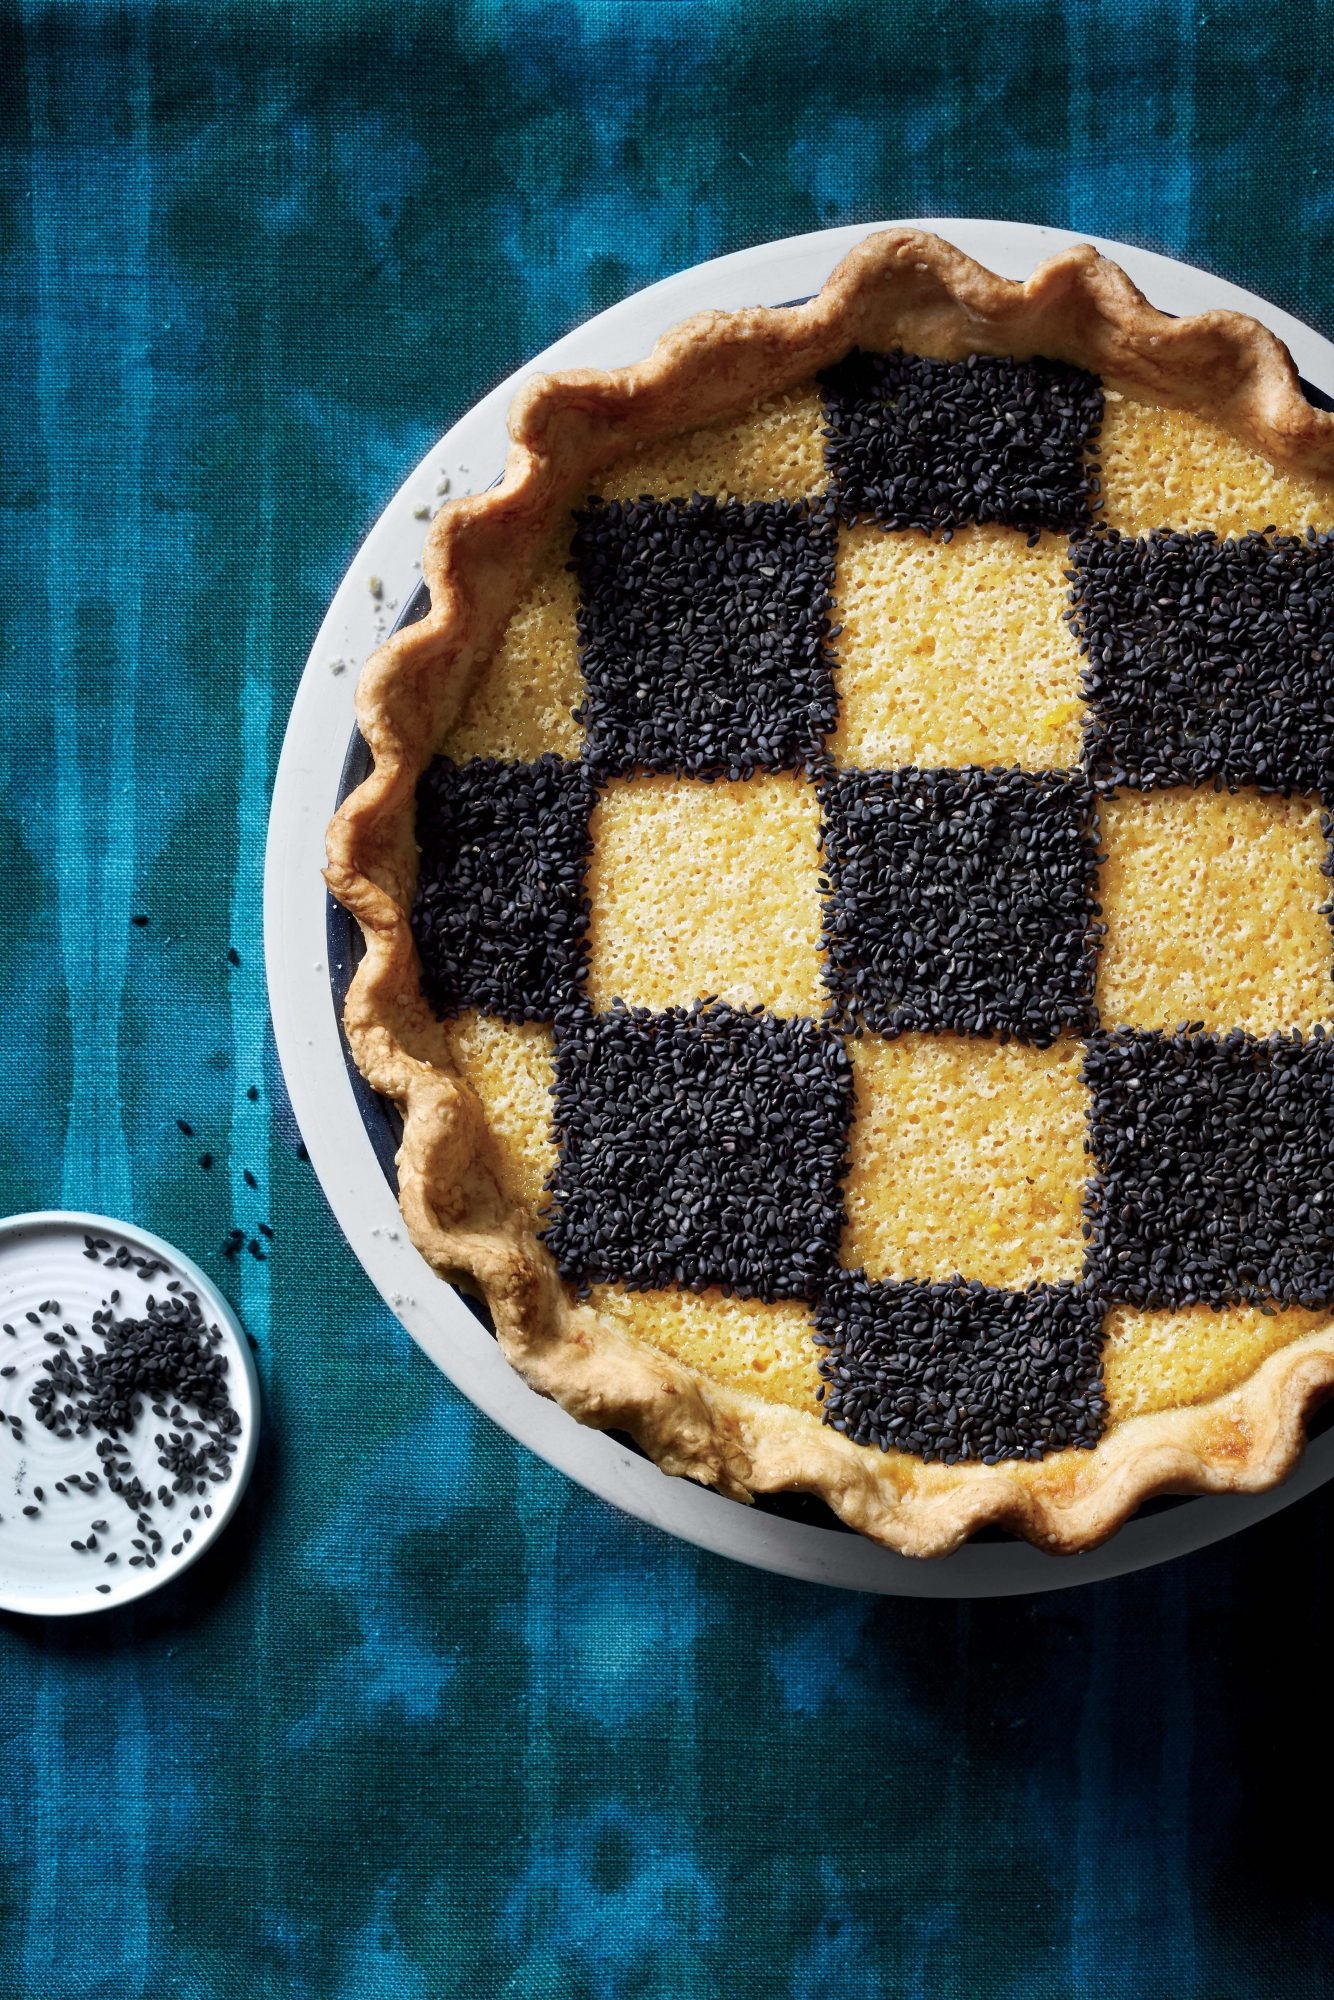 The Thanksgiving Pie You Should Make Based on Your Astrological Sign